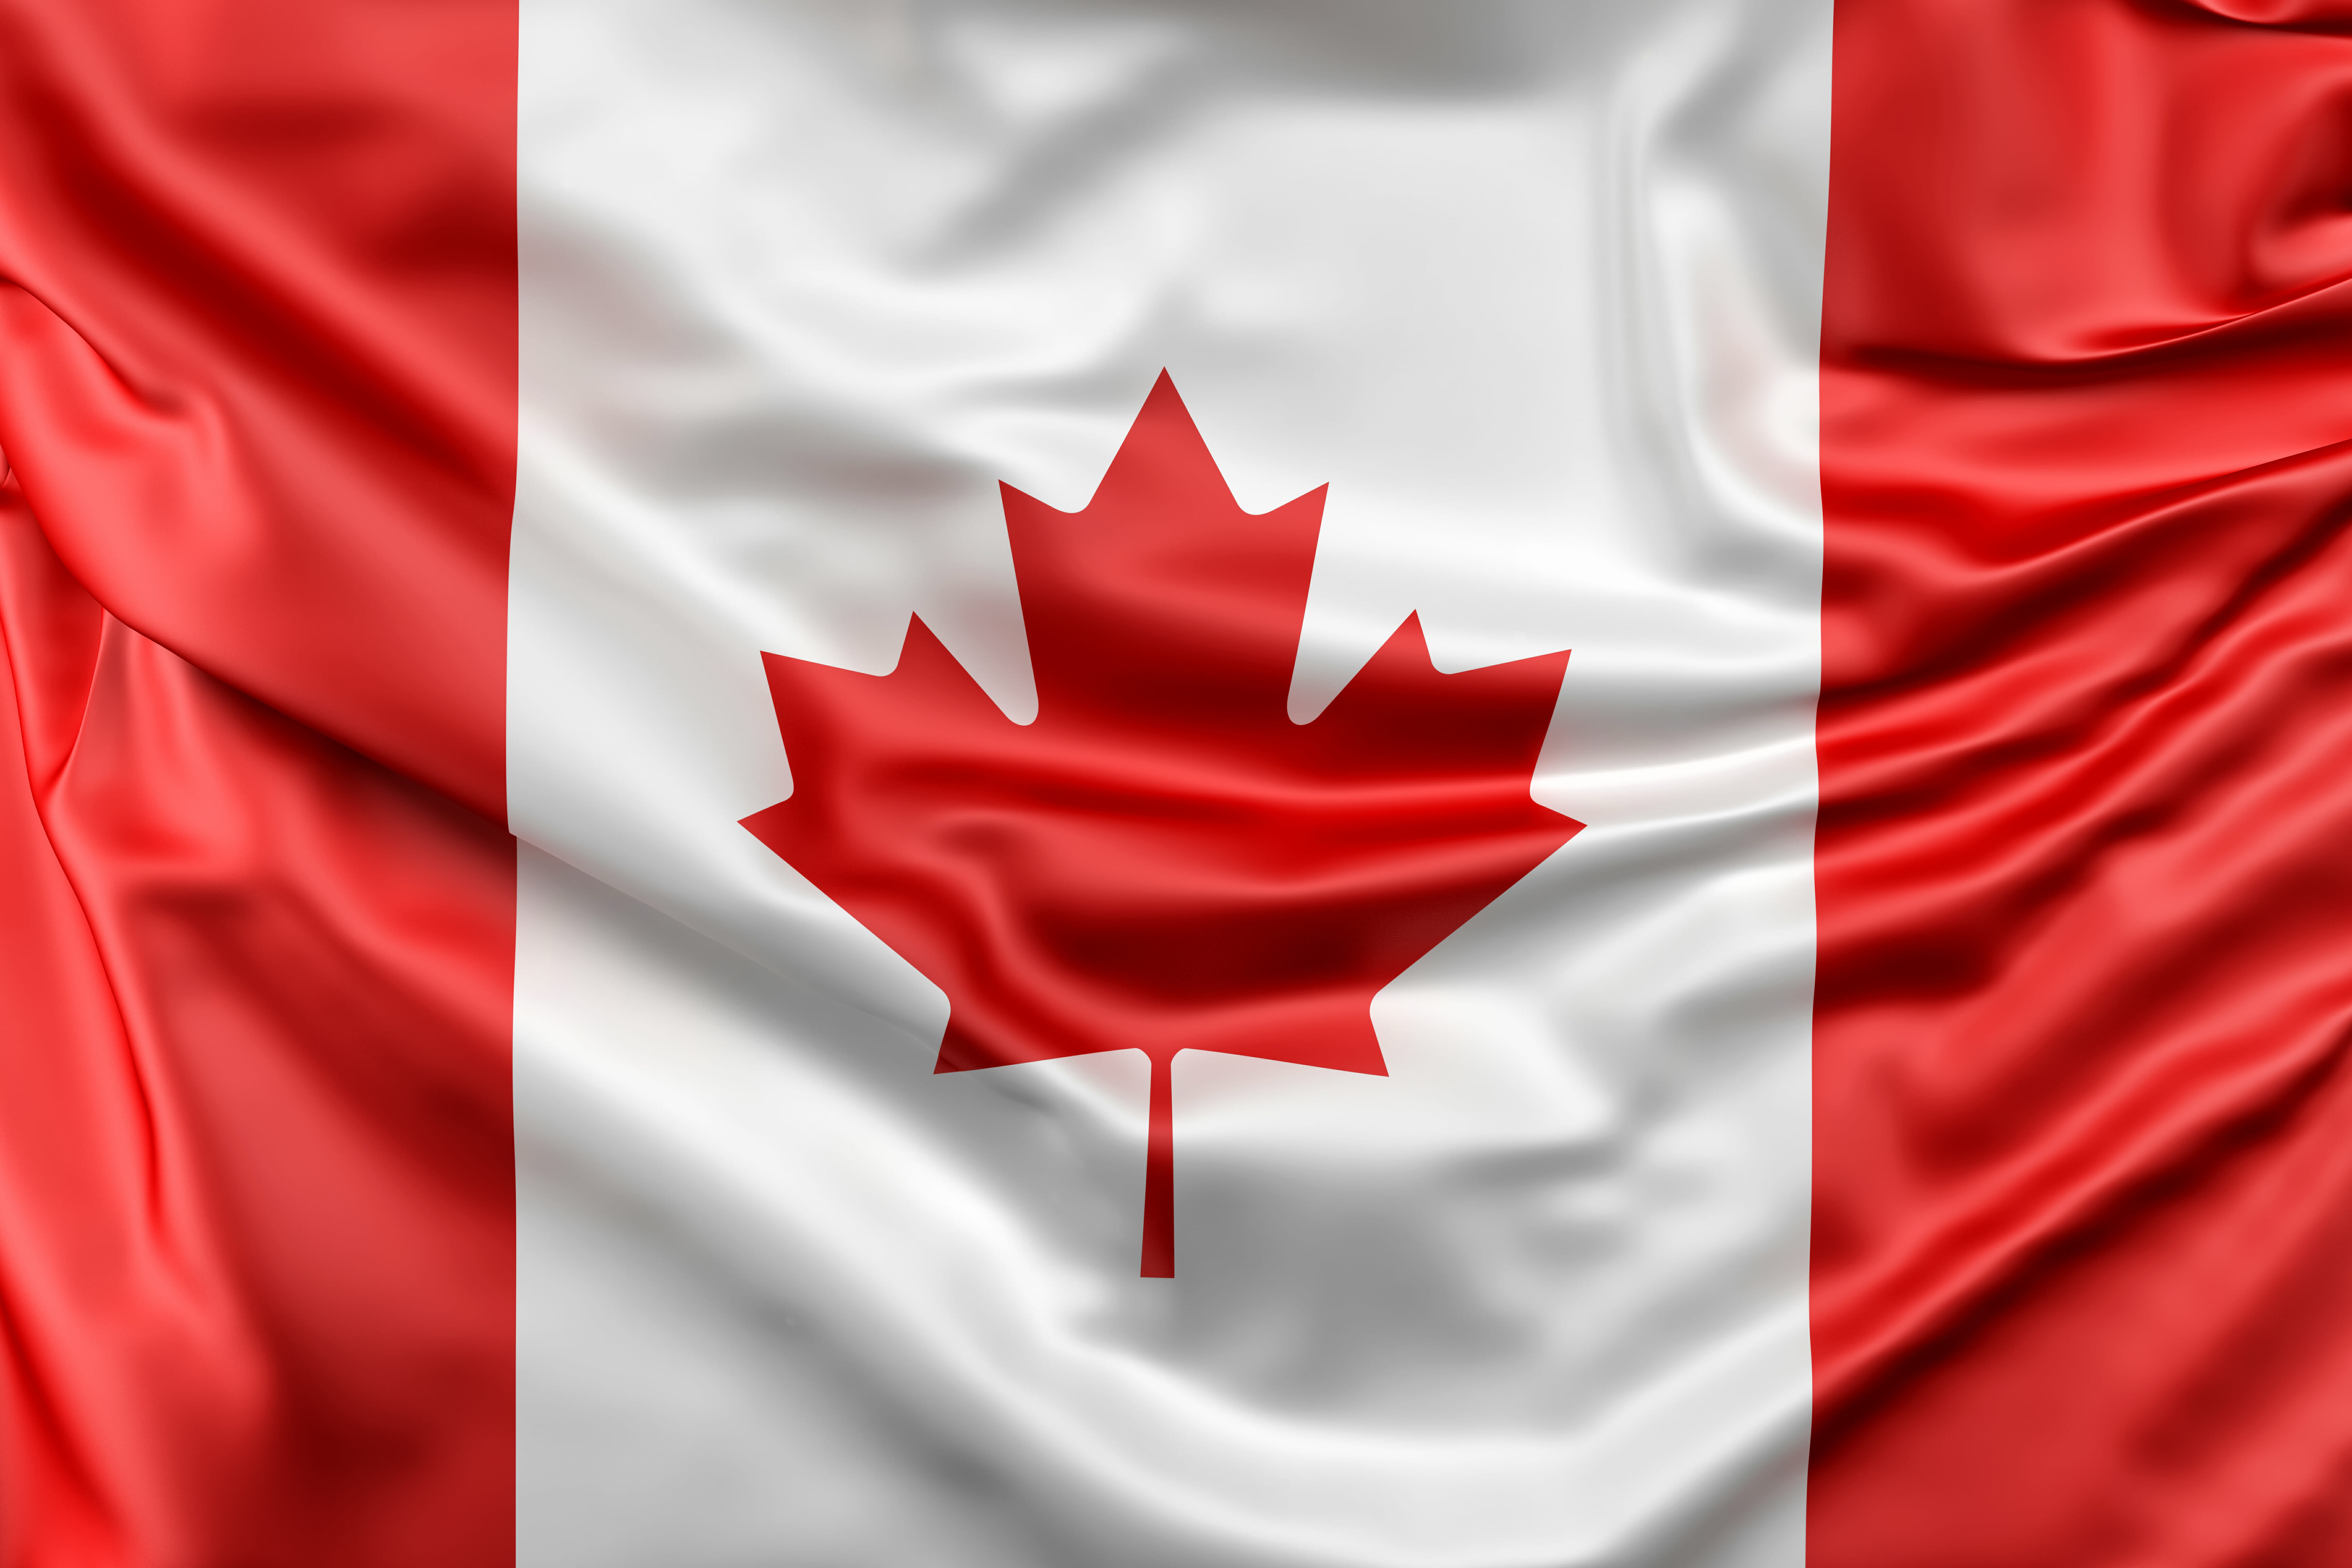 https://www.cryptoworldjournal.com/canada-seeks-to-improve-its-tools-to-monitor-cryptocurrencies/#respond